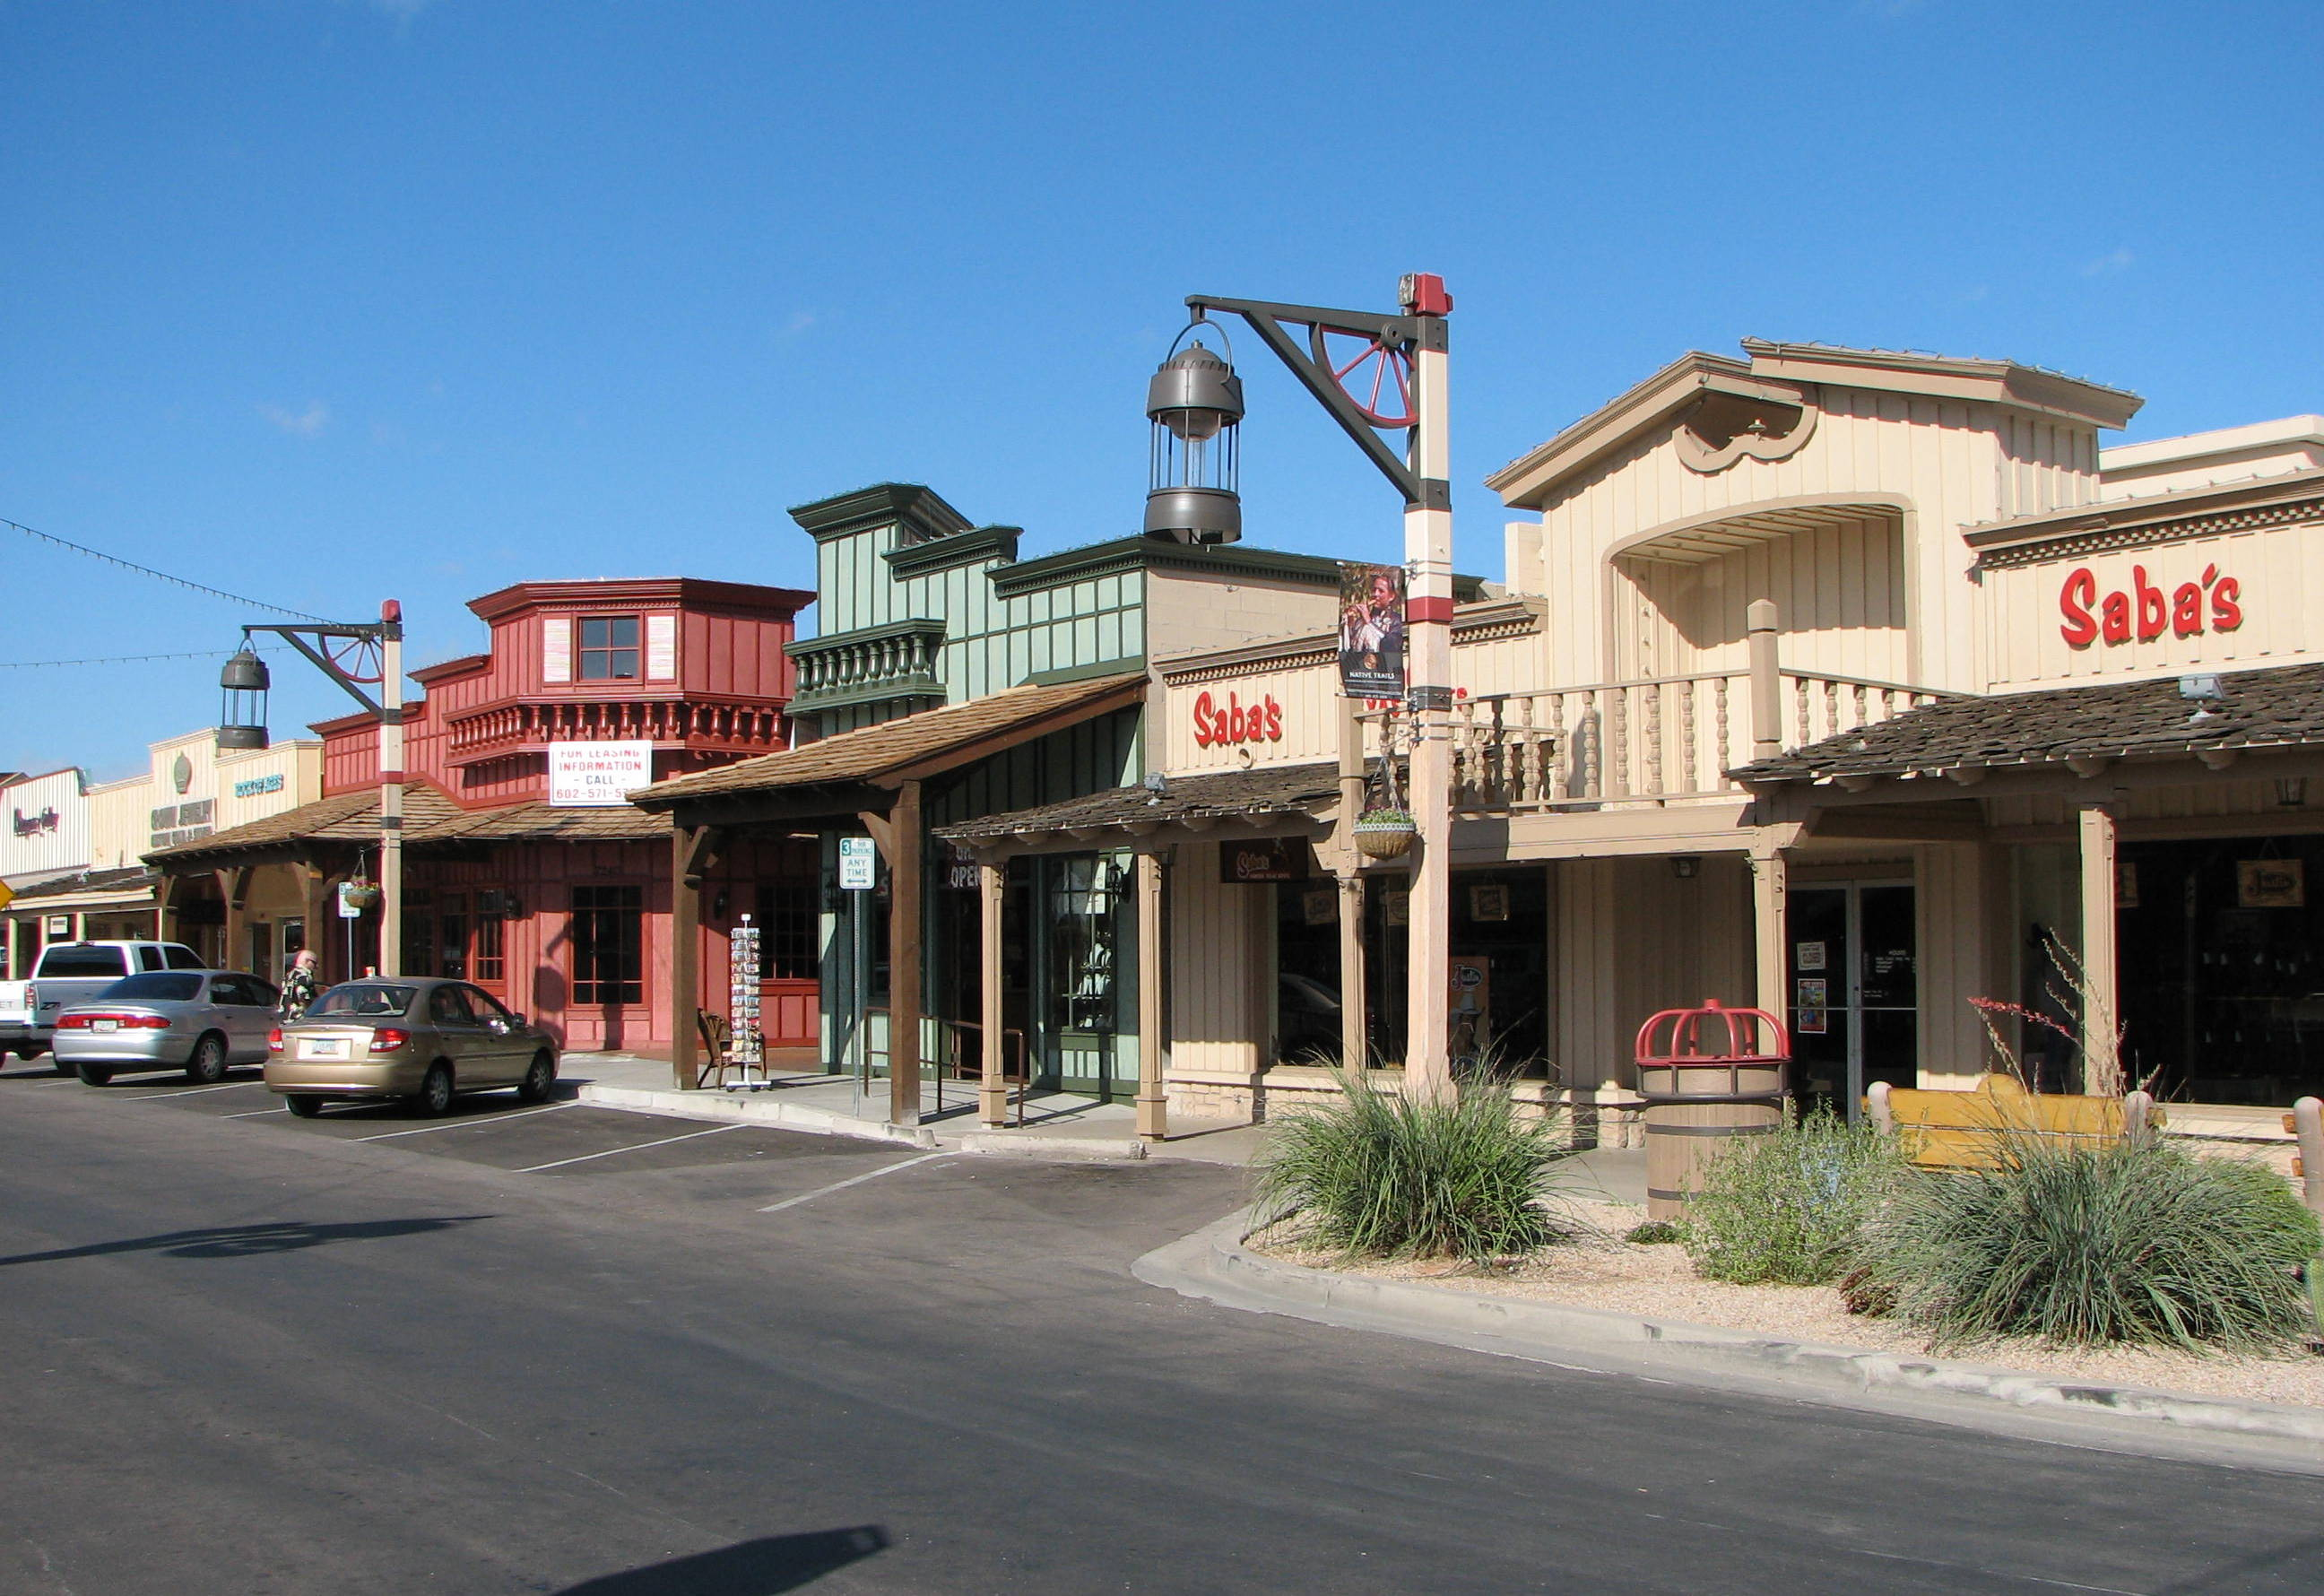 File:Old Town Scottsdale 01.jpg - Wikipedia